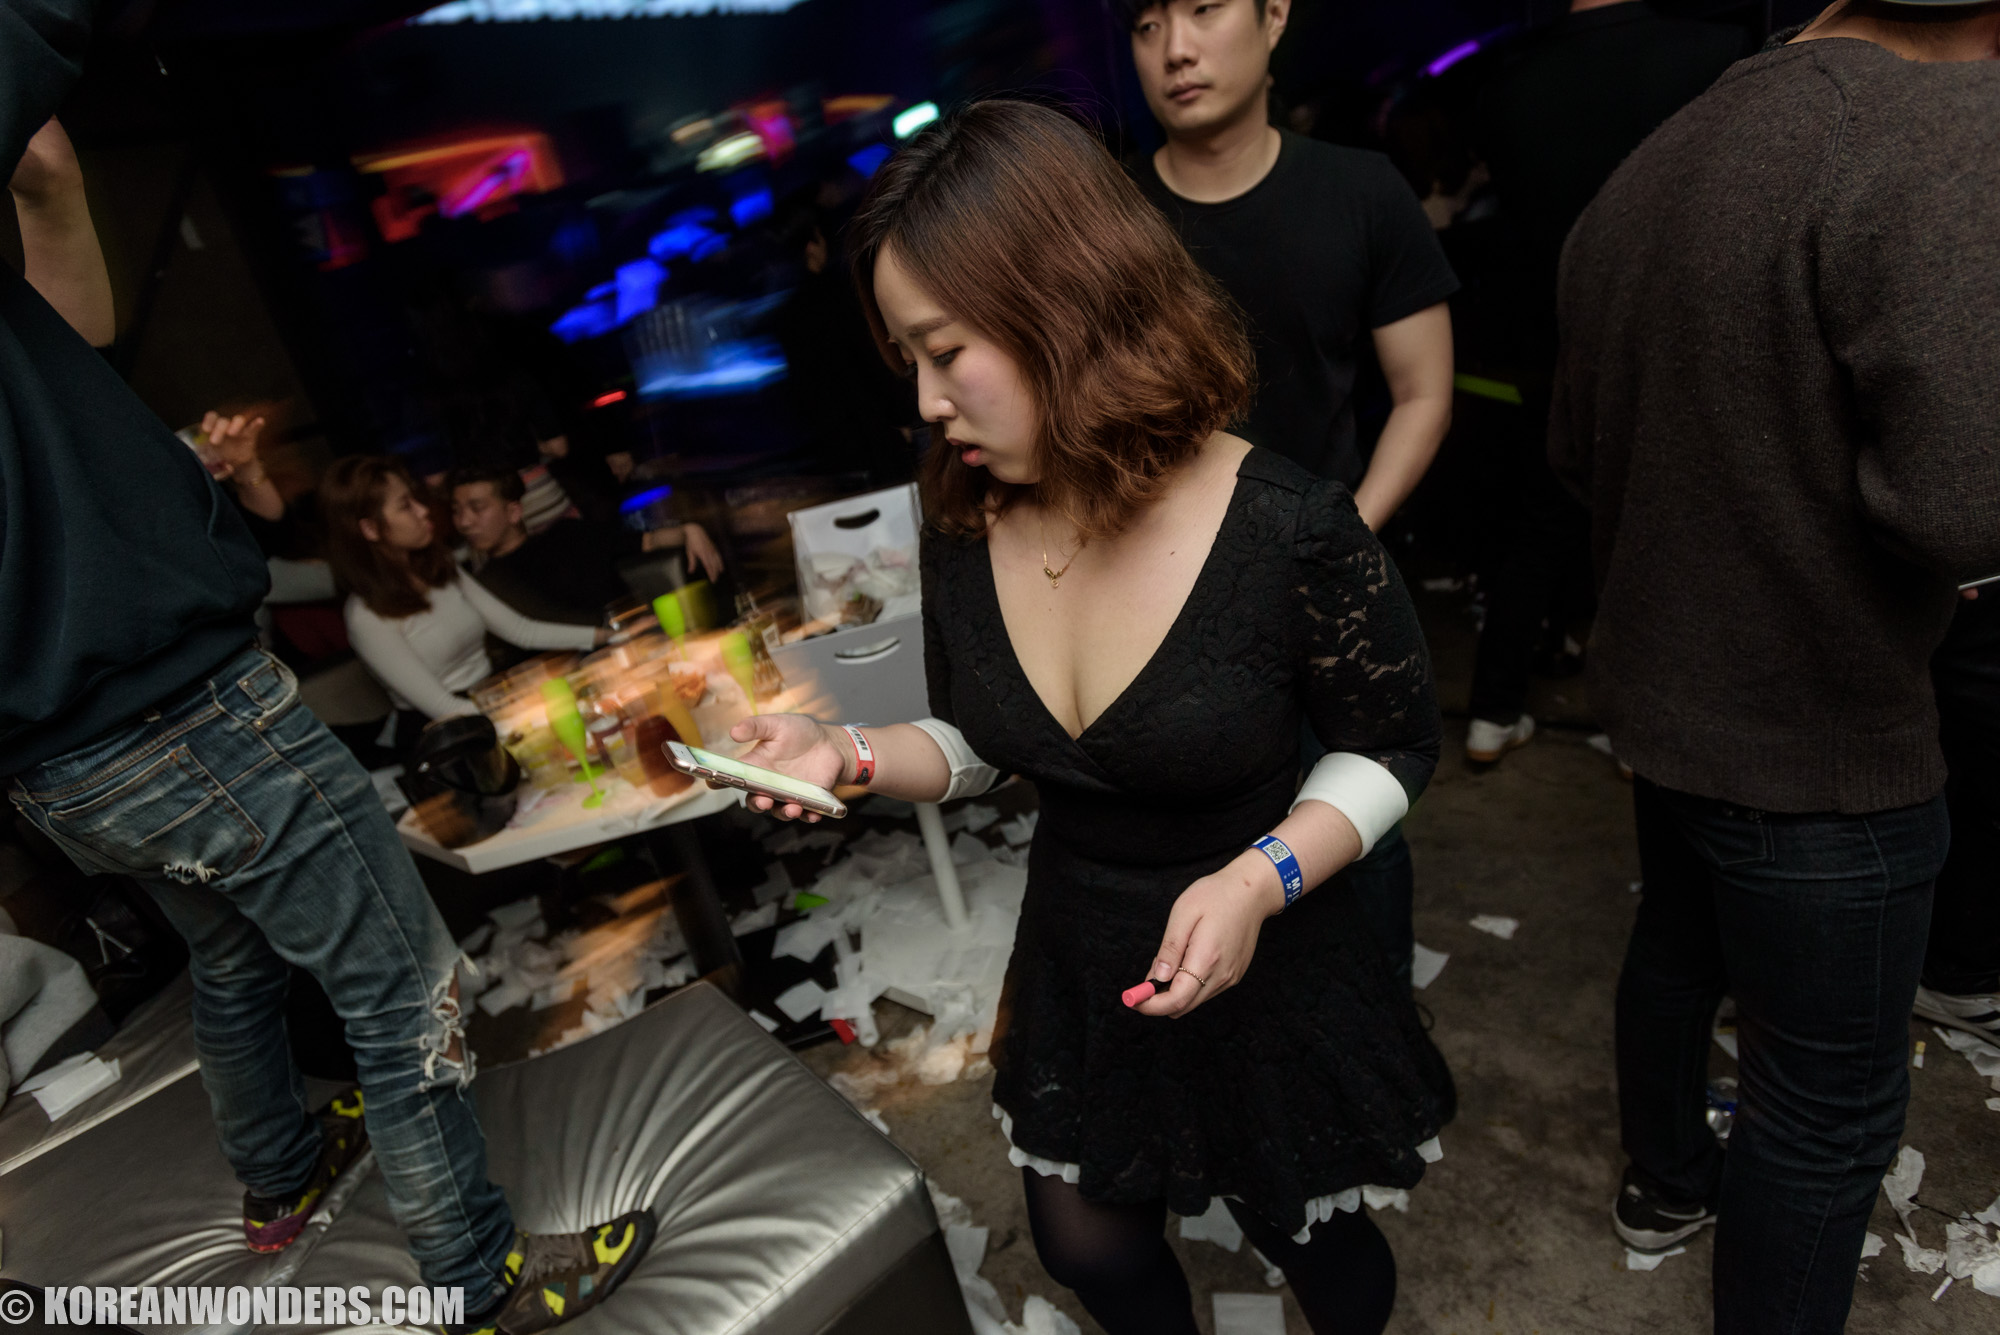 Party at Club Octagon - 2016.02.19 (Fri)